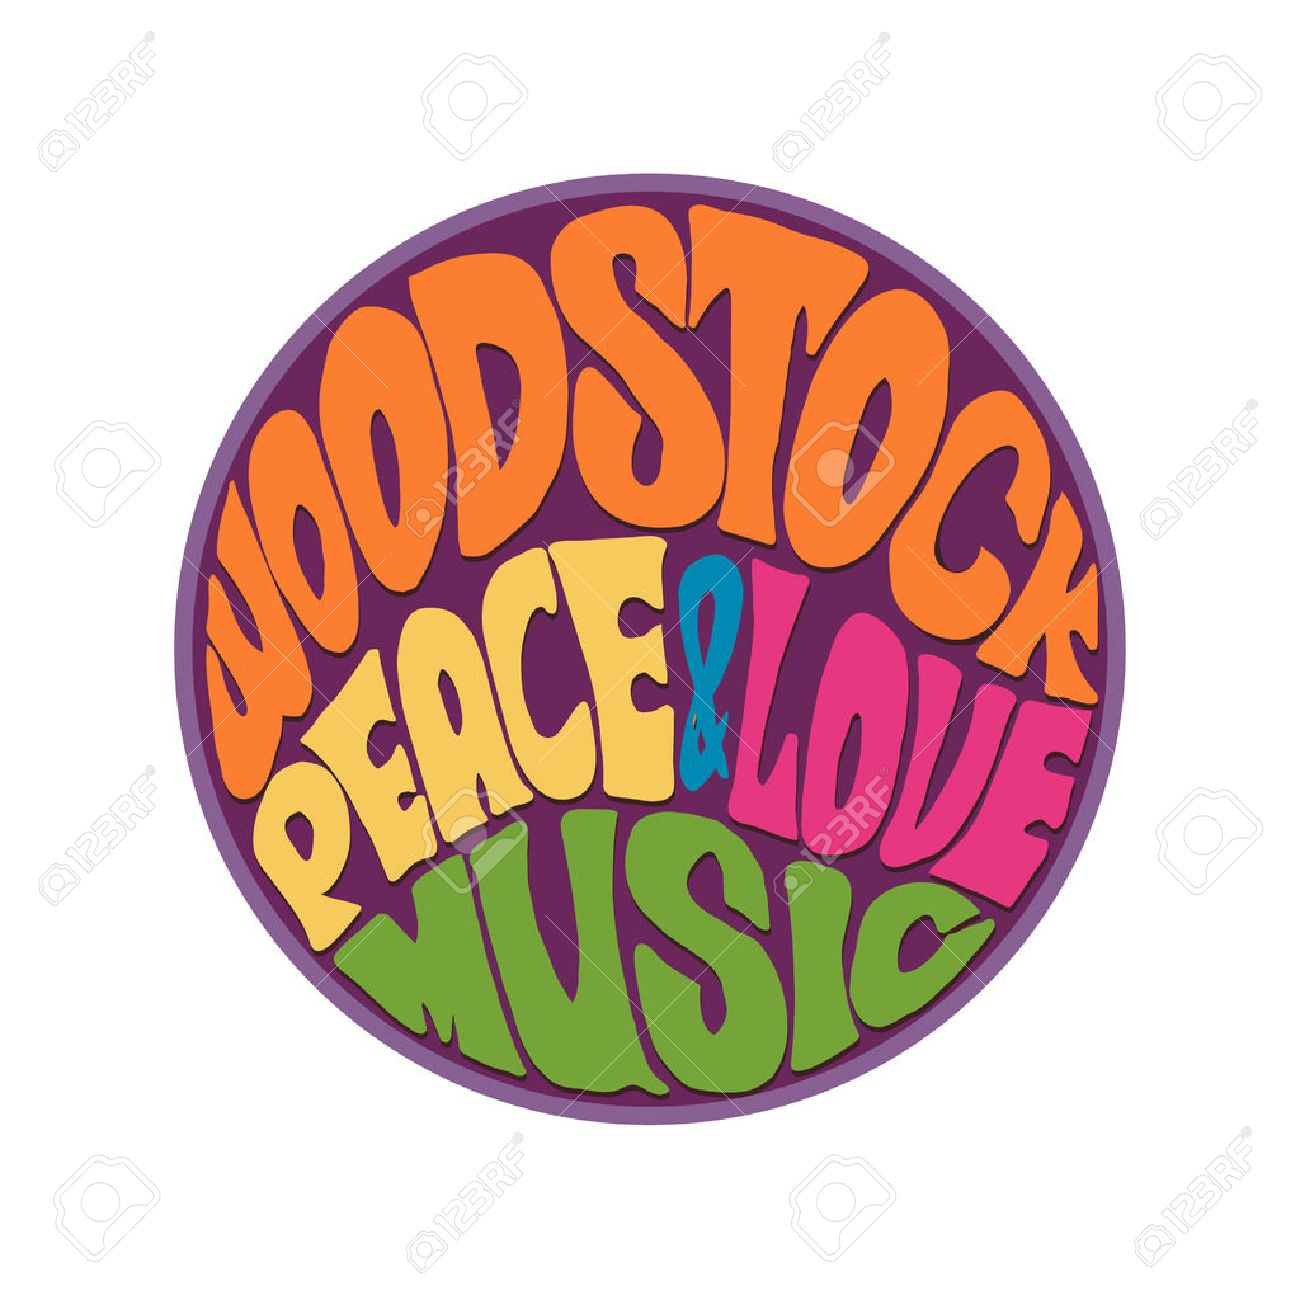 Psychedelic Rock Music Stock Photos Royalty Free Psychedelic Rock